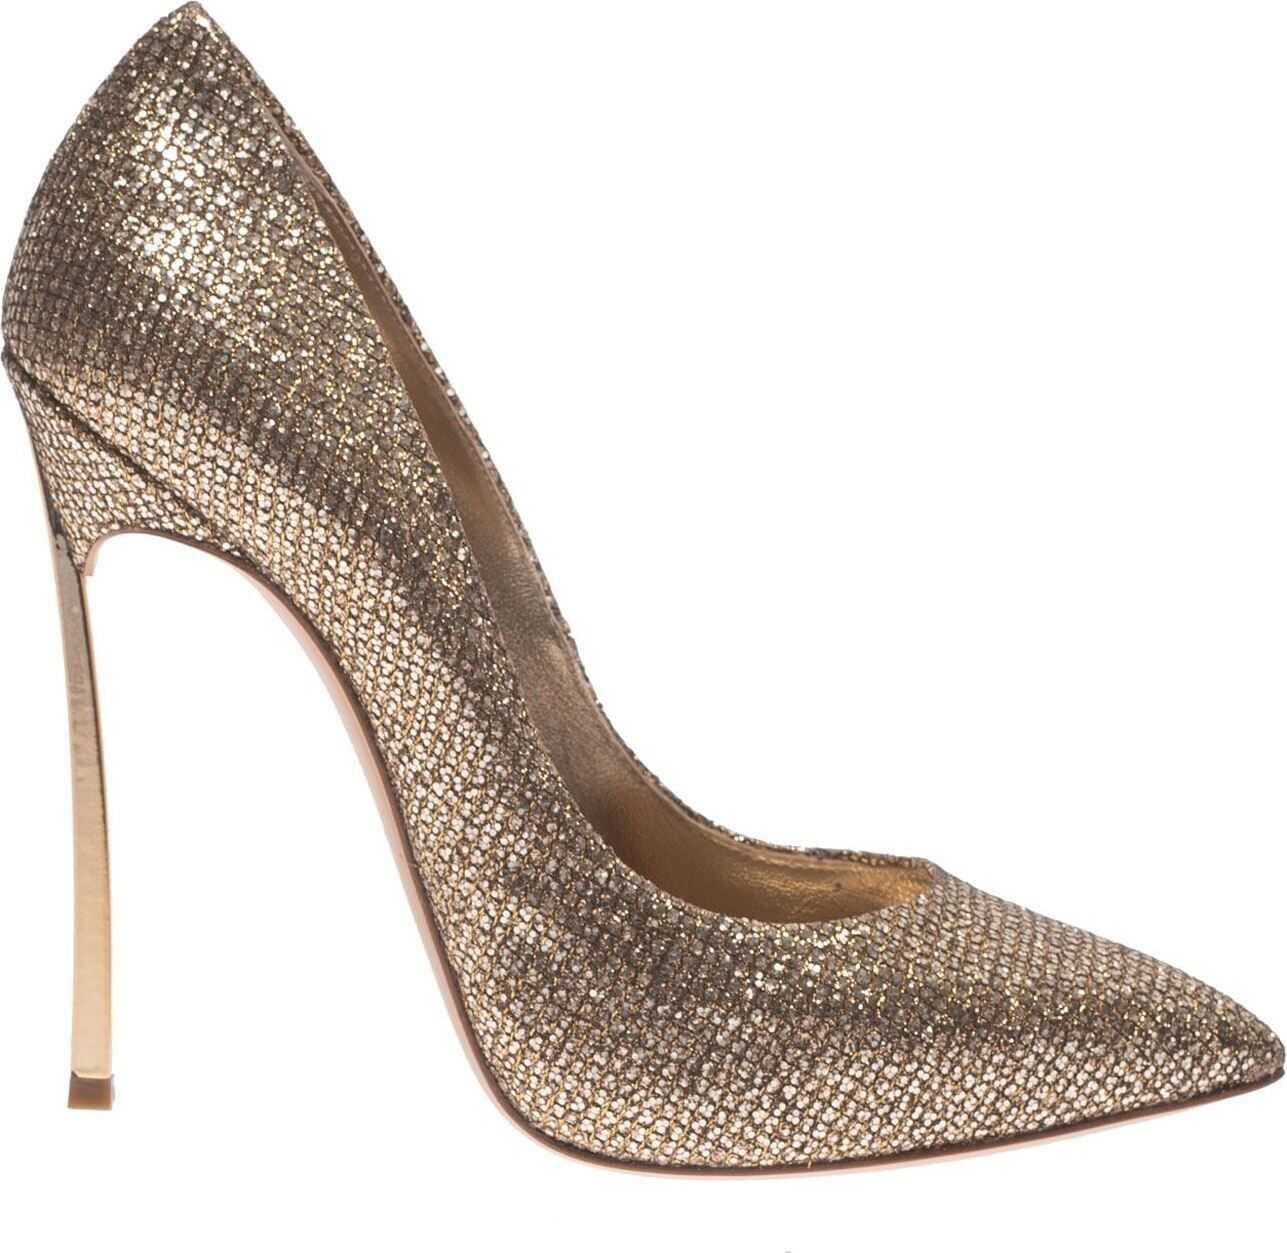 Pumps In Gold Color With Blade Heel thumbnail